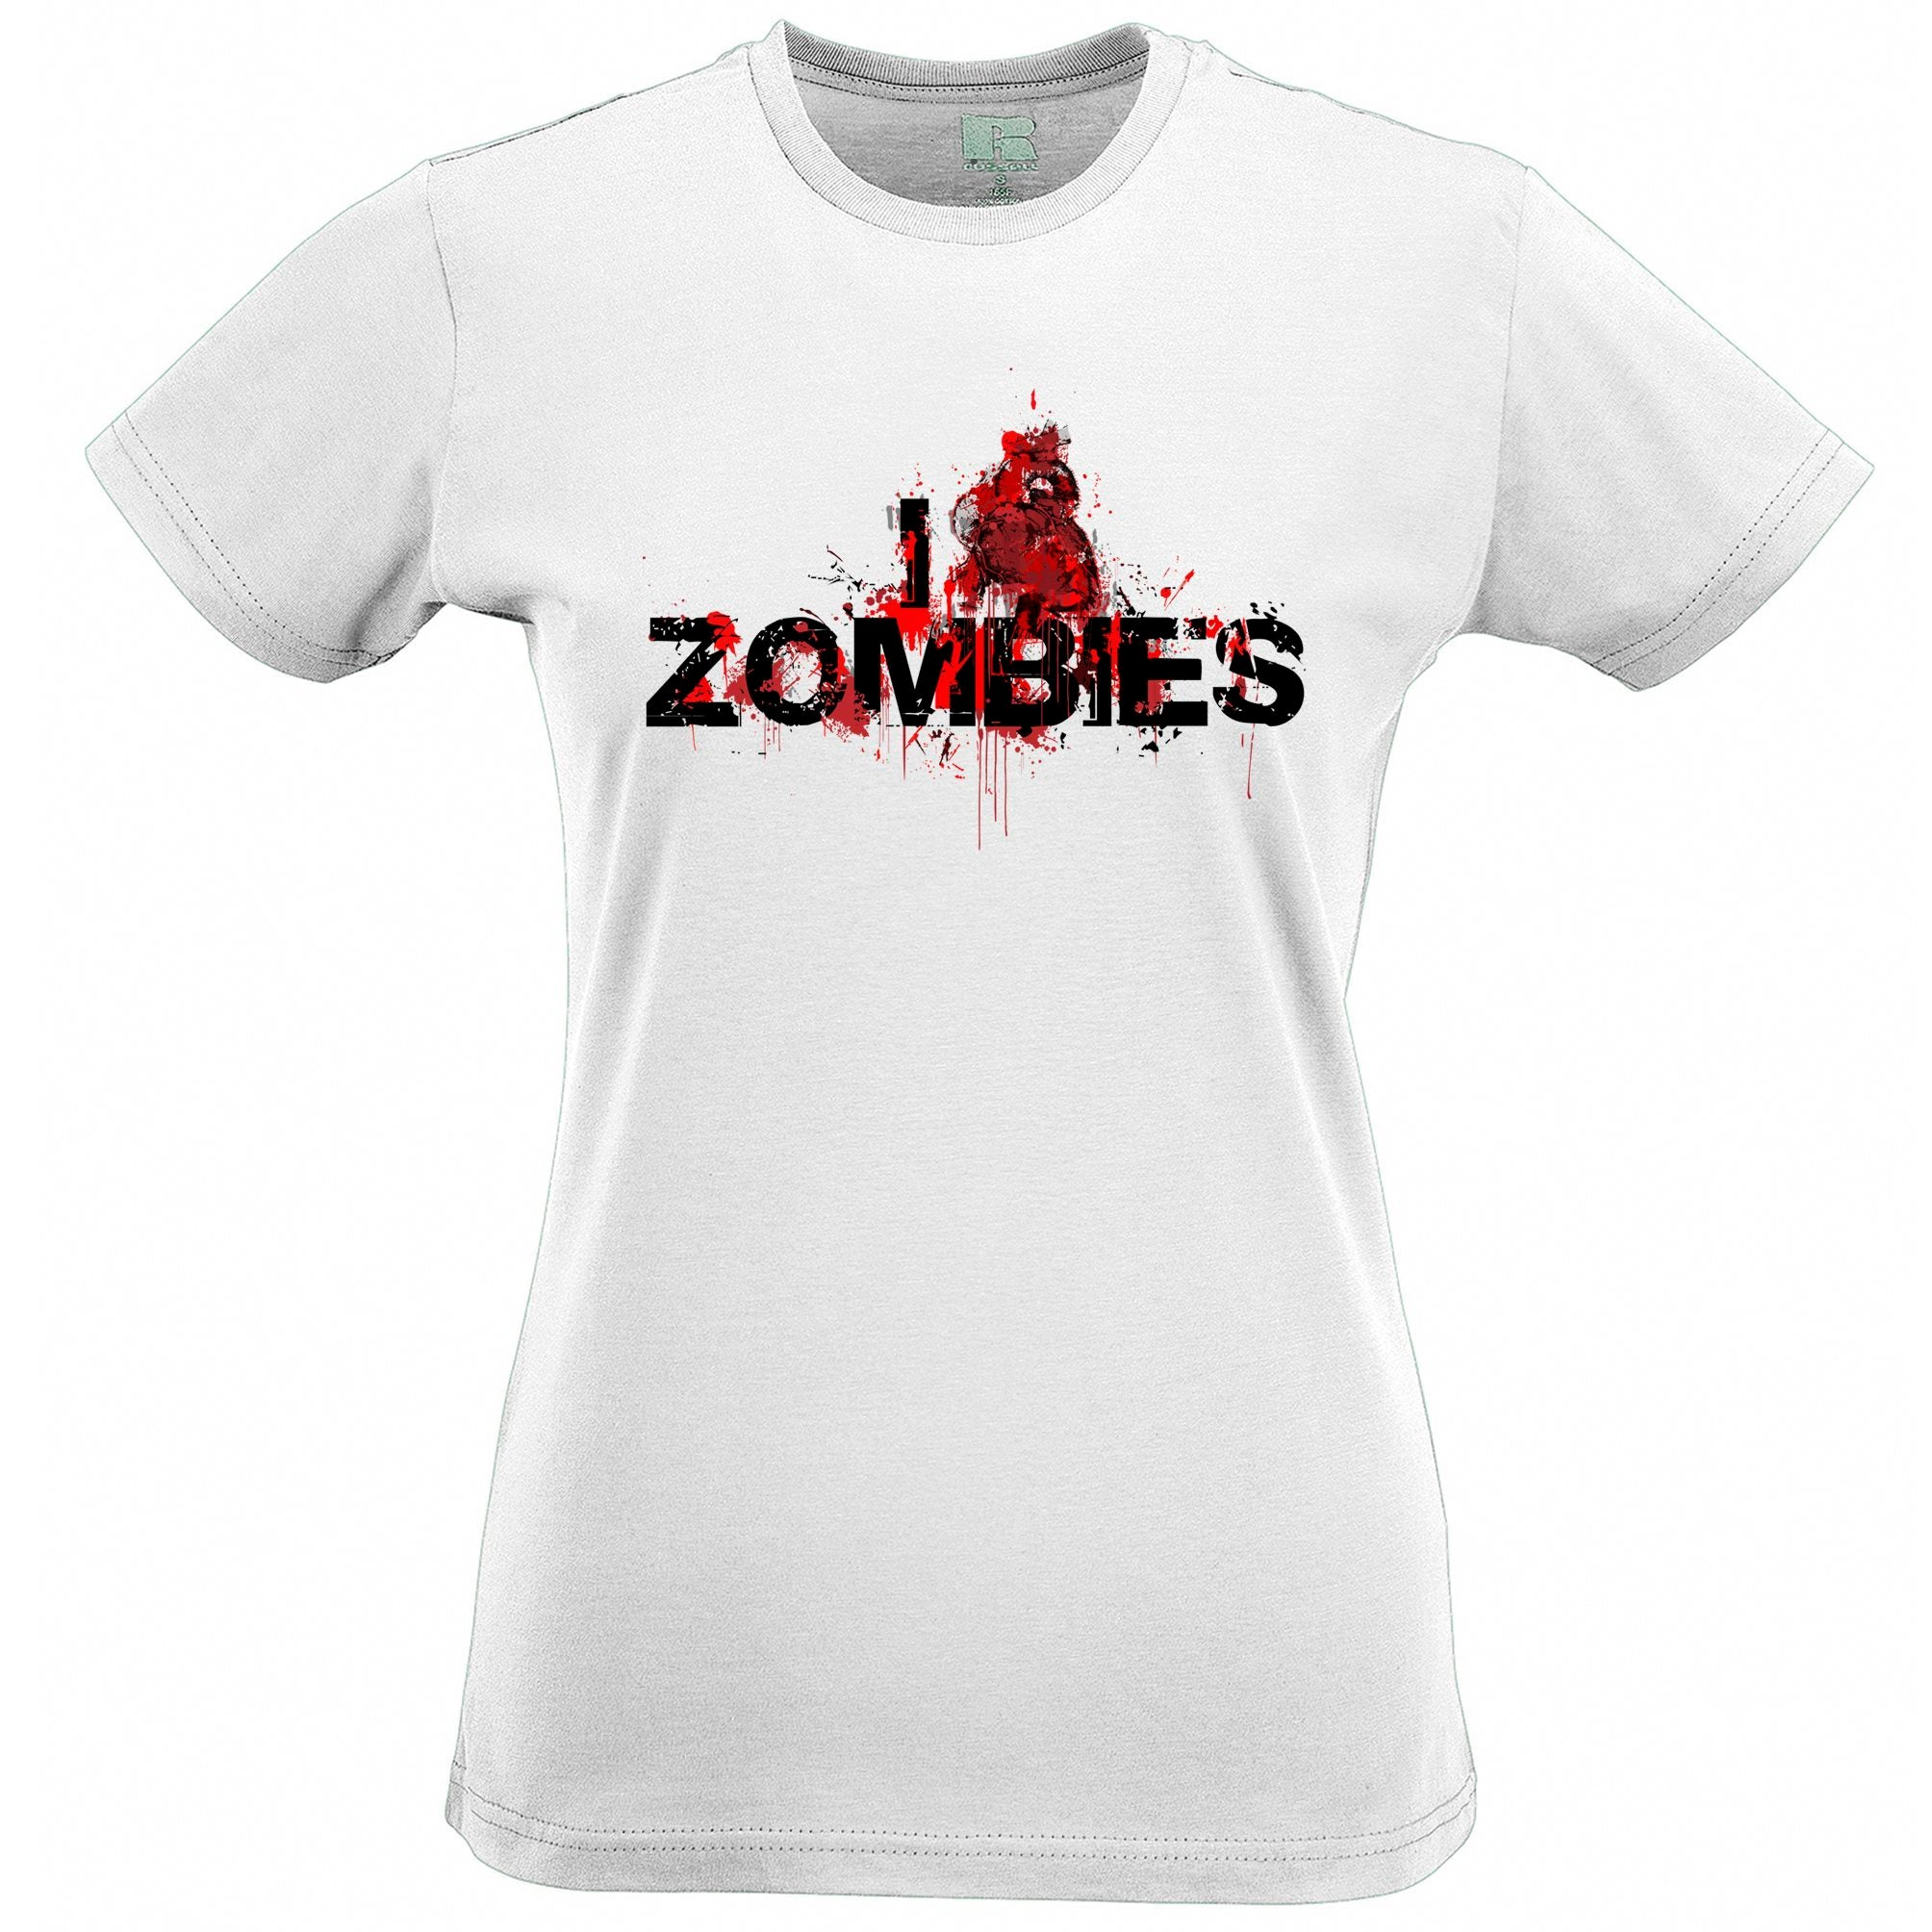 Halloween Womens TShirt I Love Zombies Slogan Tee